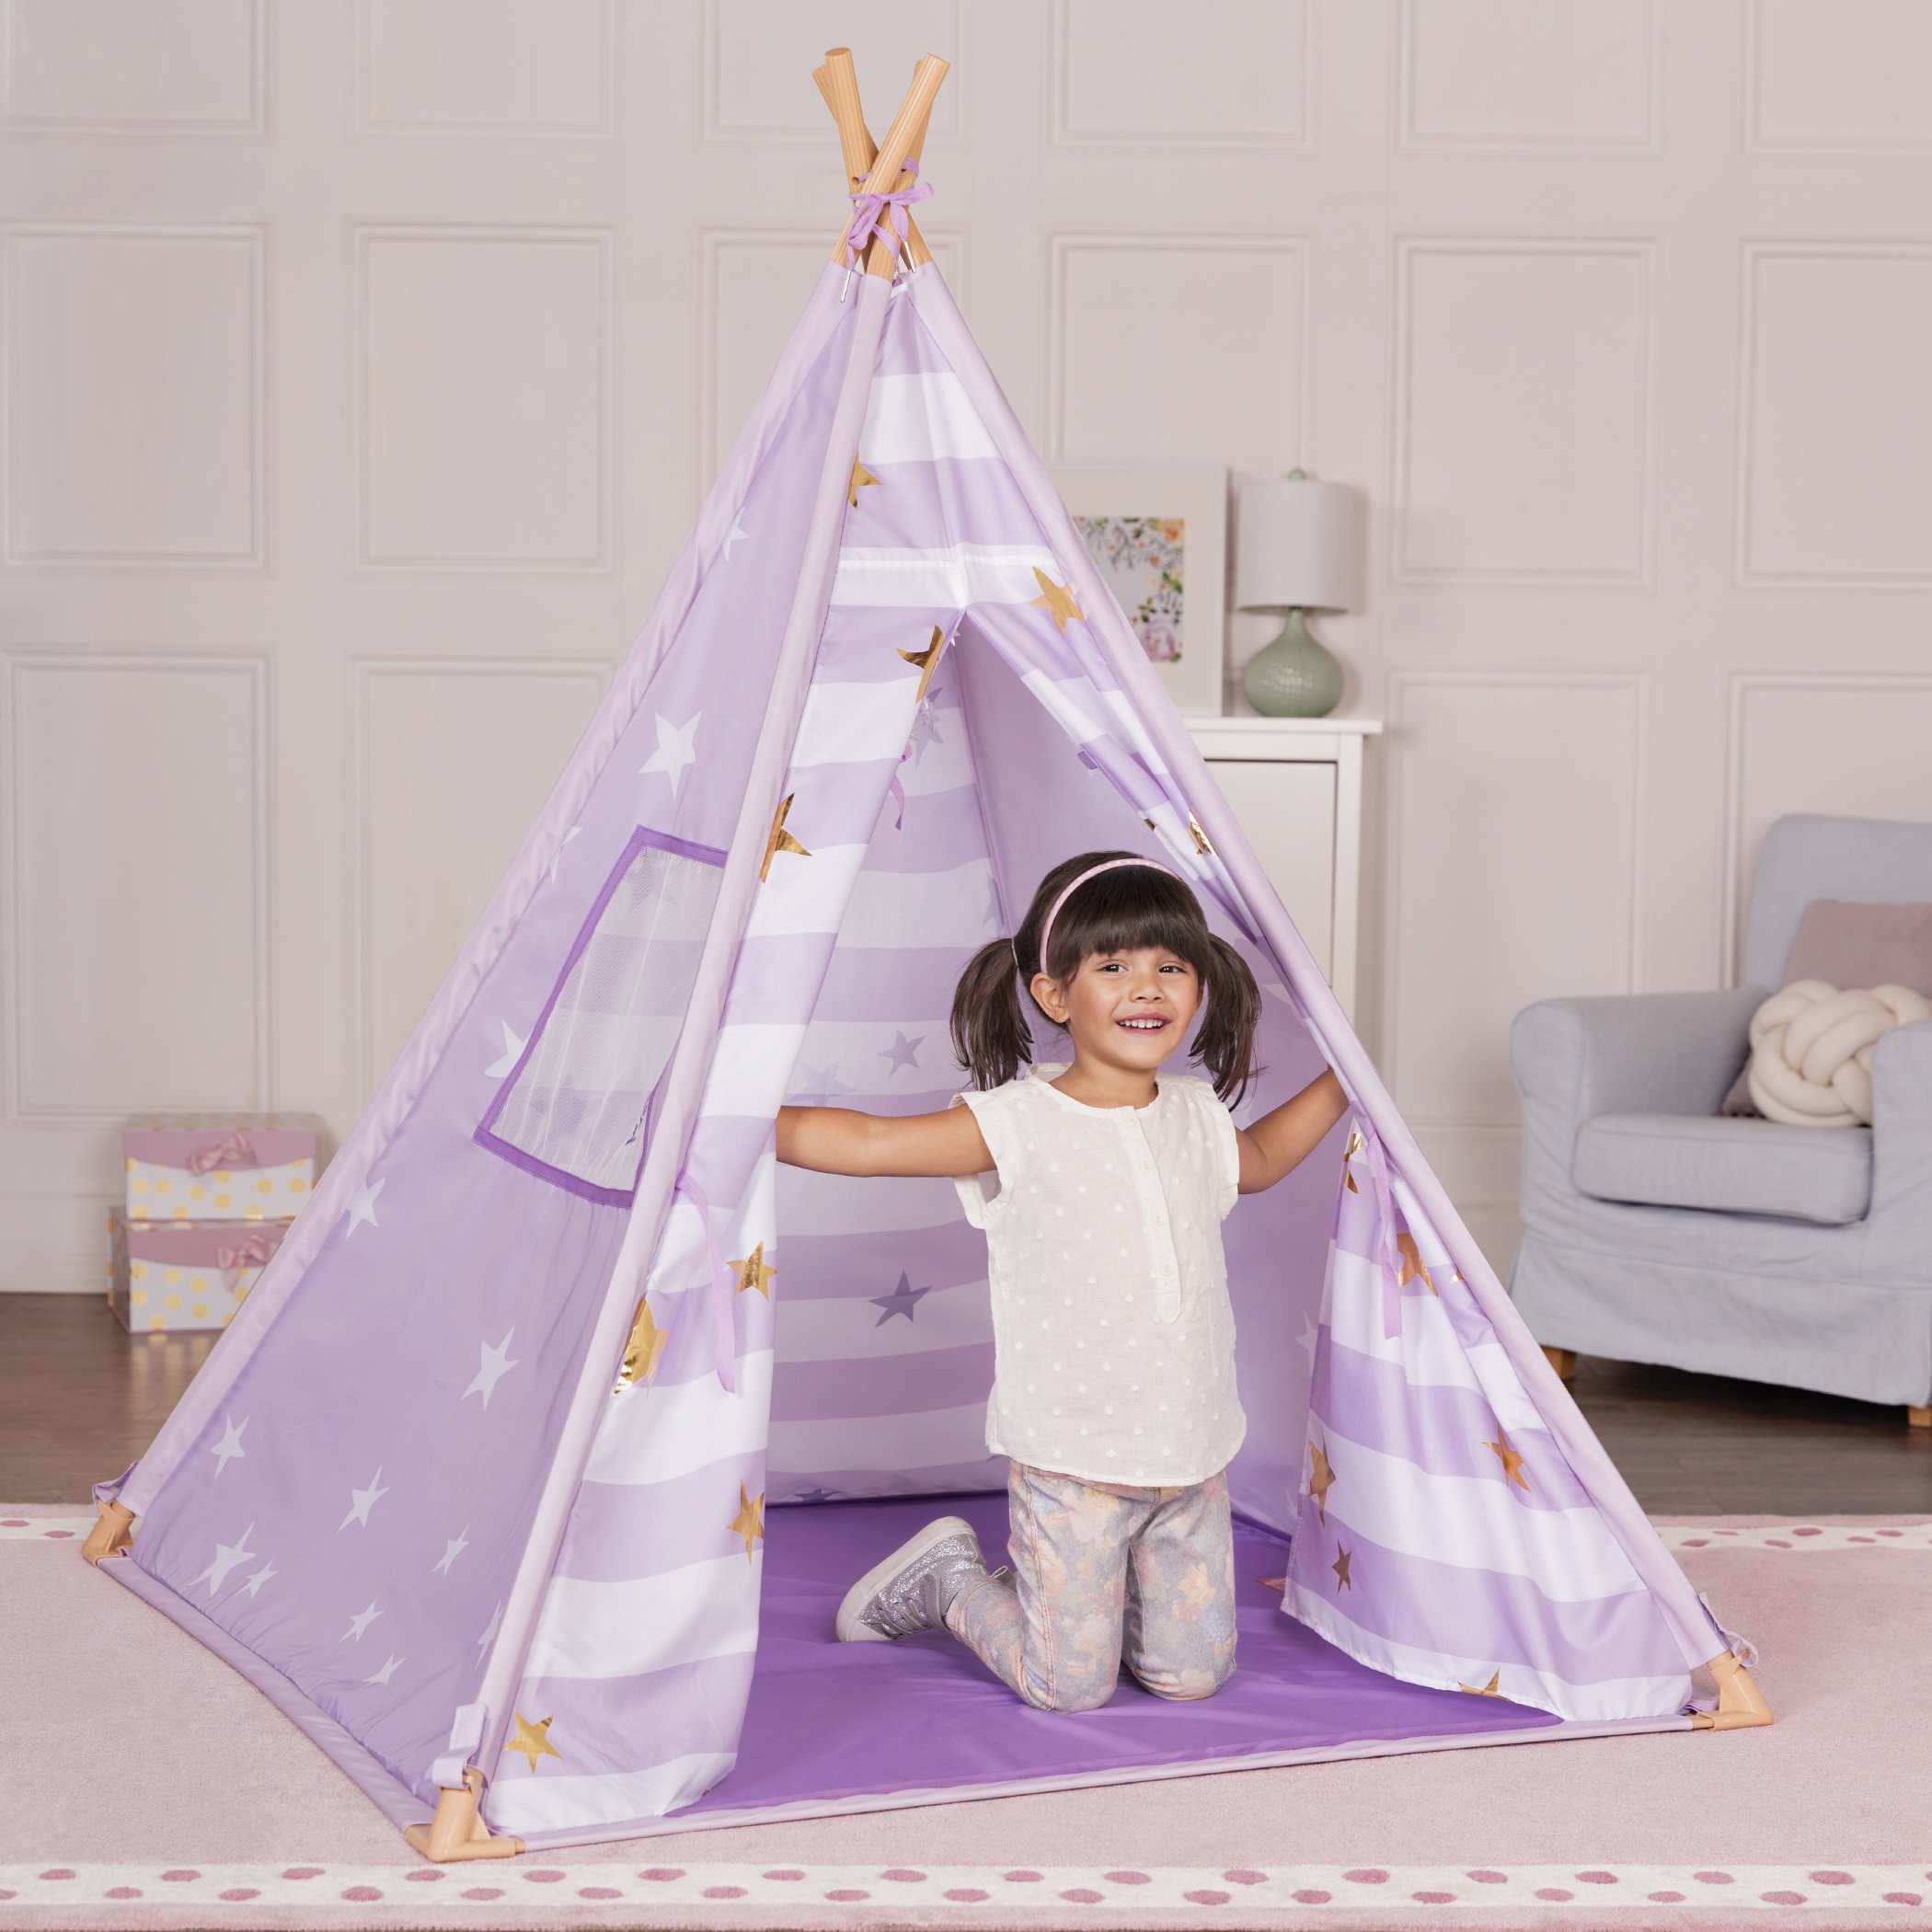 Lilac Suite Teepee little girl playing inside